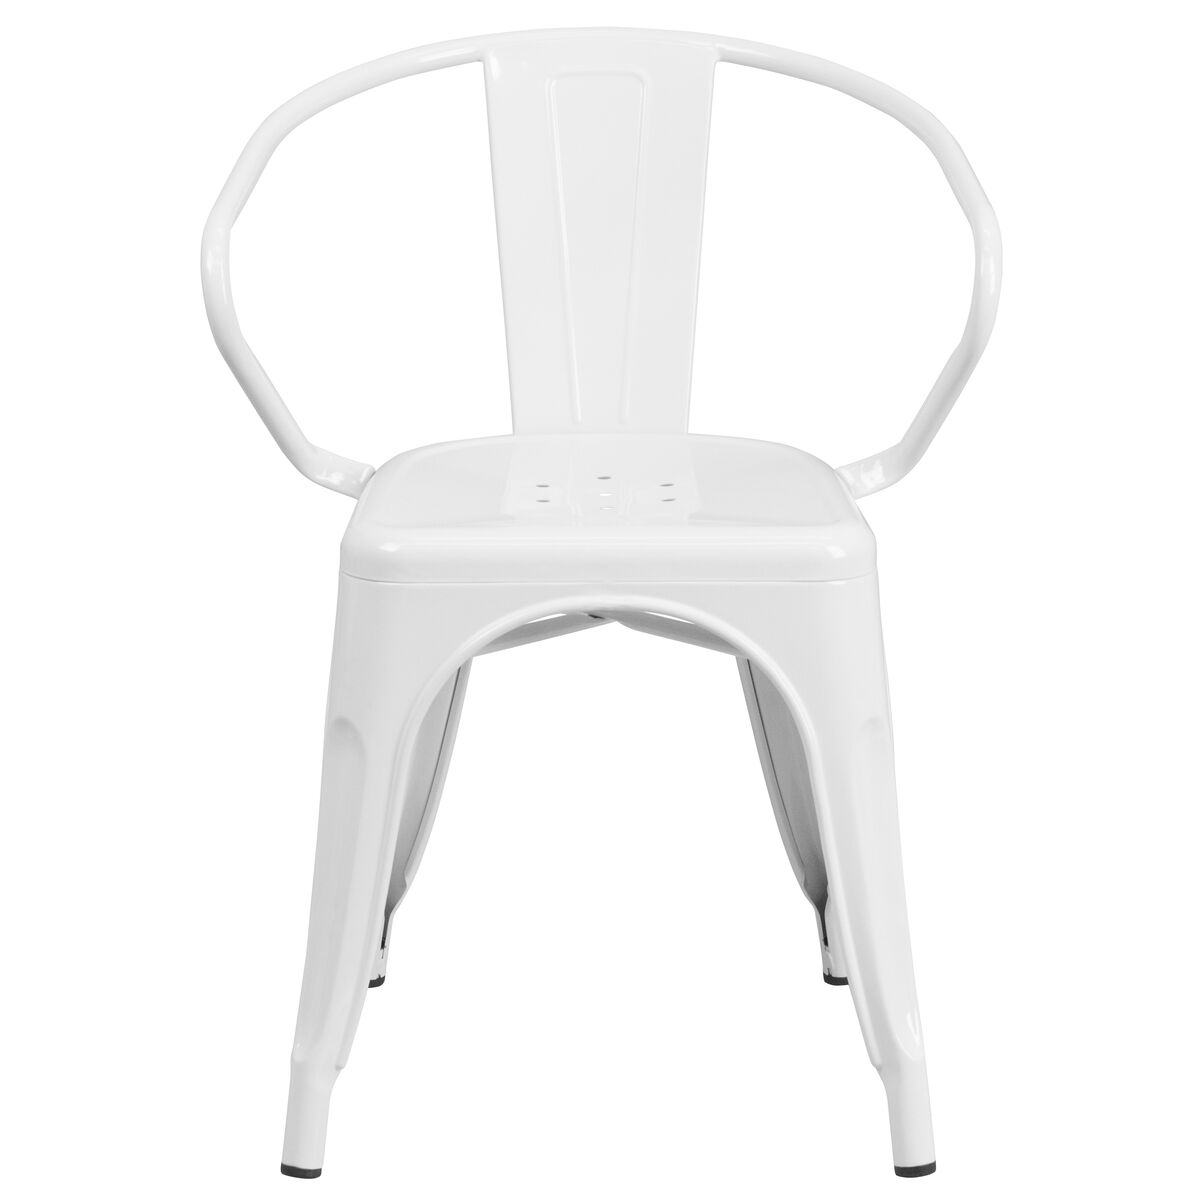 Our White Metal Indoor Outdoor Chair With Arms Is On Now